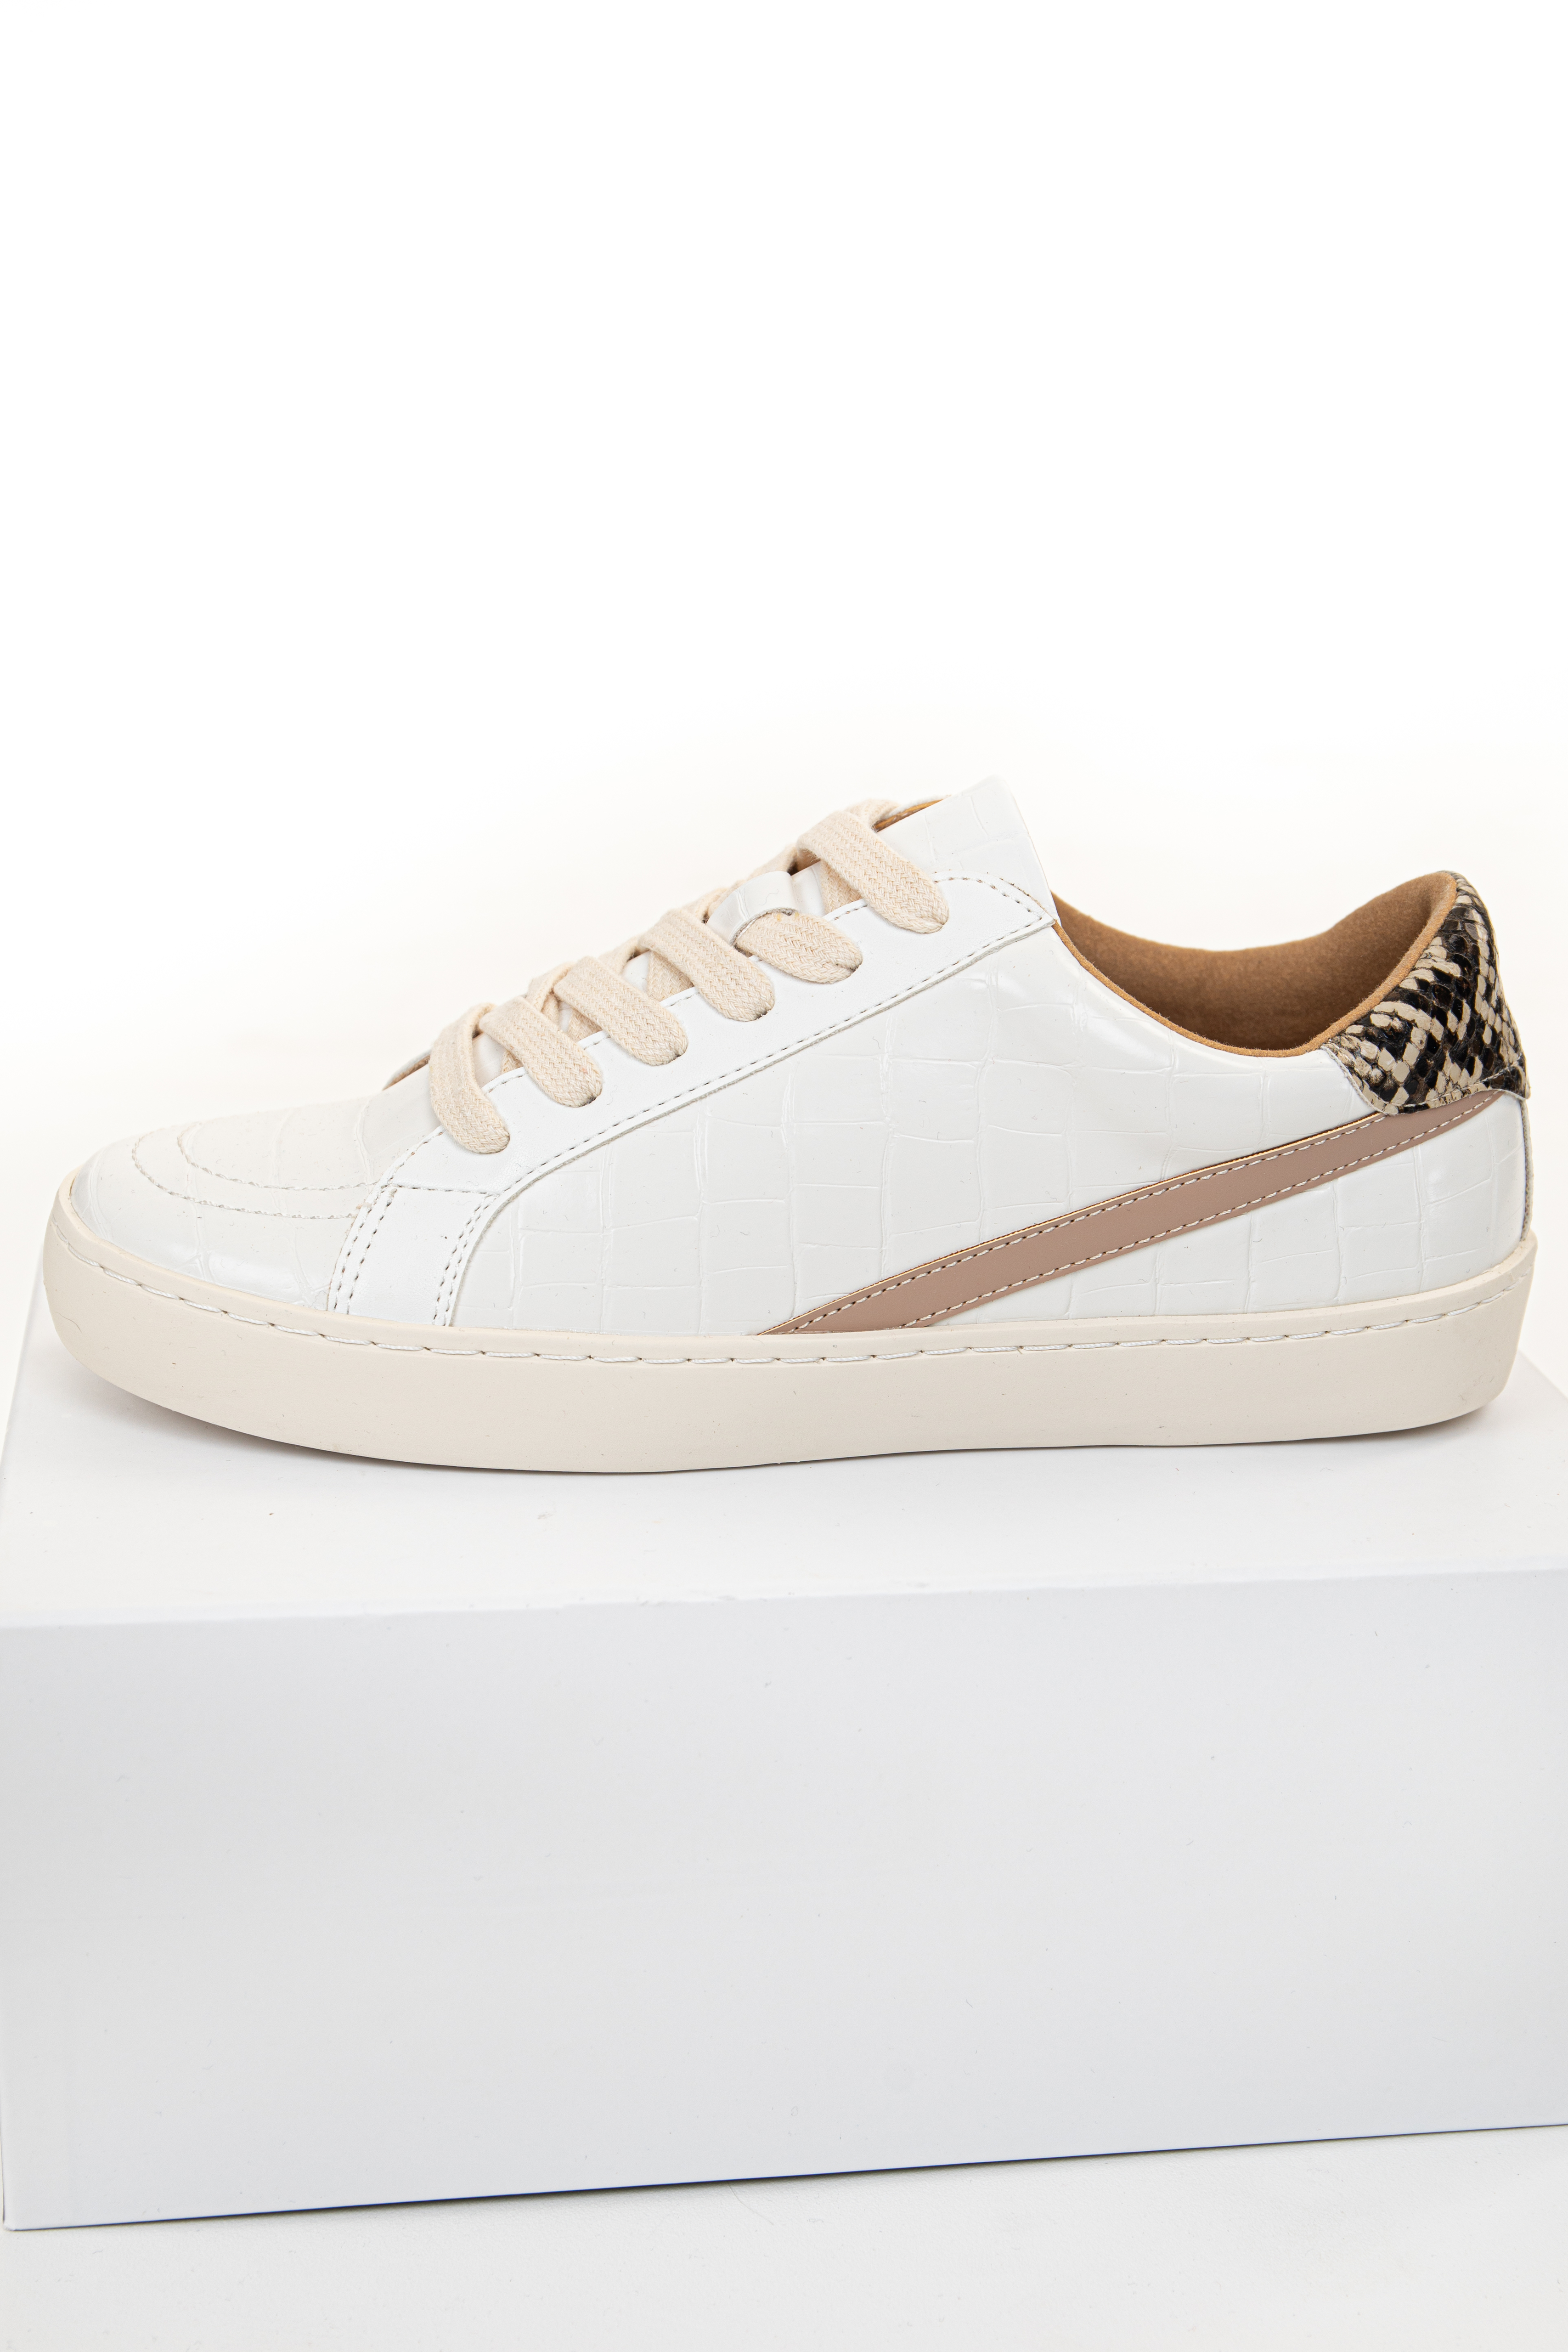 Ivory Faux Leather Sneakers with